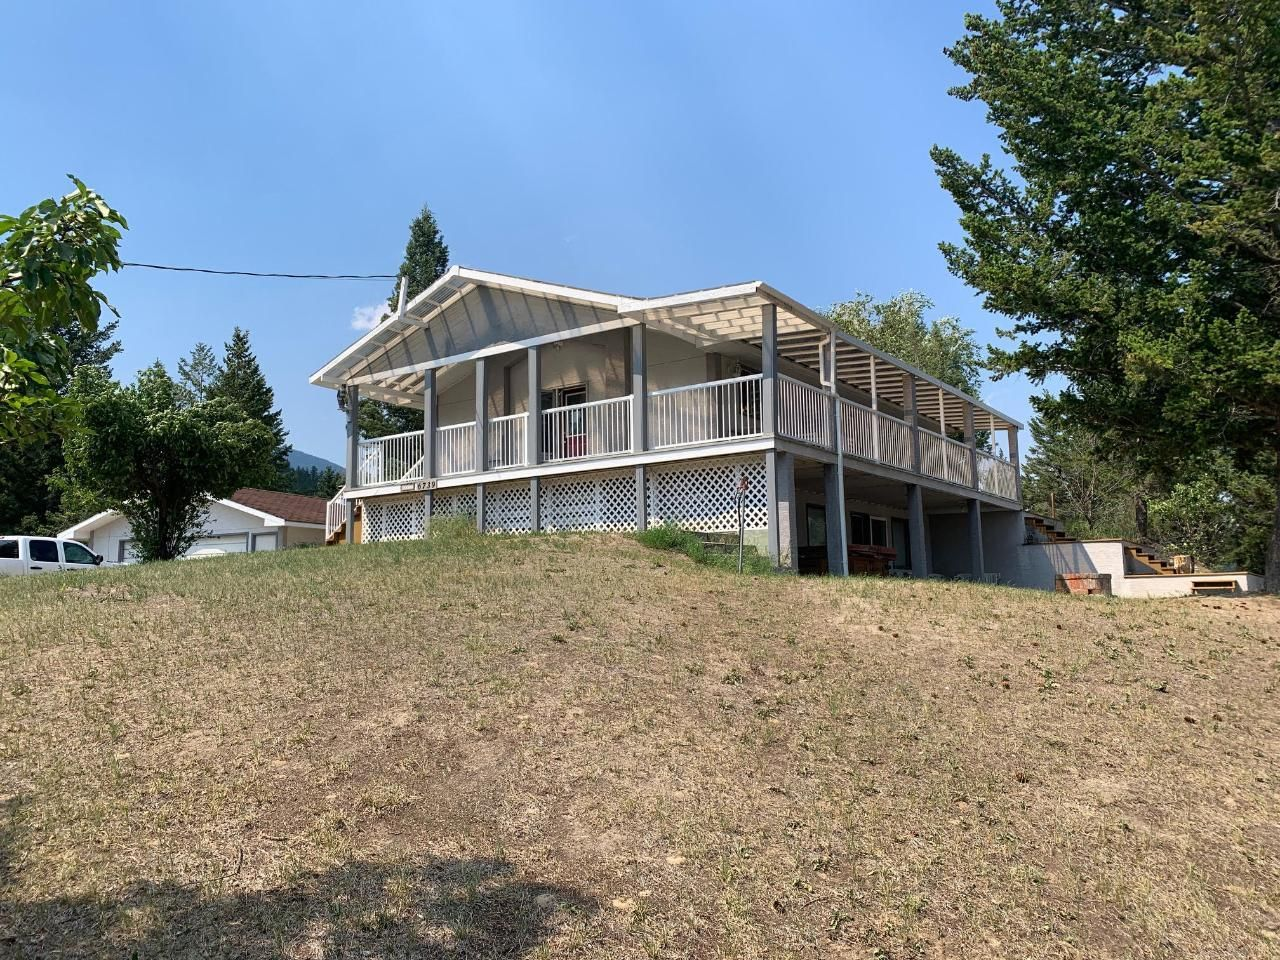 Main Photo: 6739 COLUMBIA ESTATES ROAD in Fairmont Hot Springs: House for sale : MLS®# 2460186